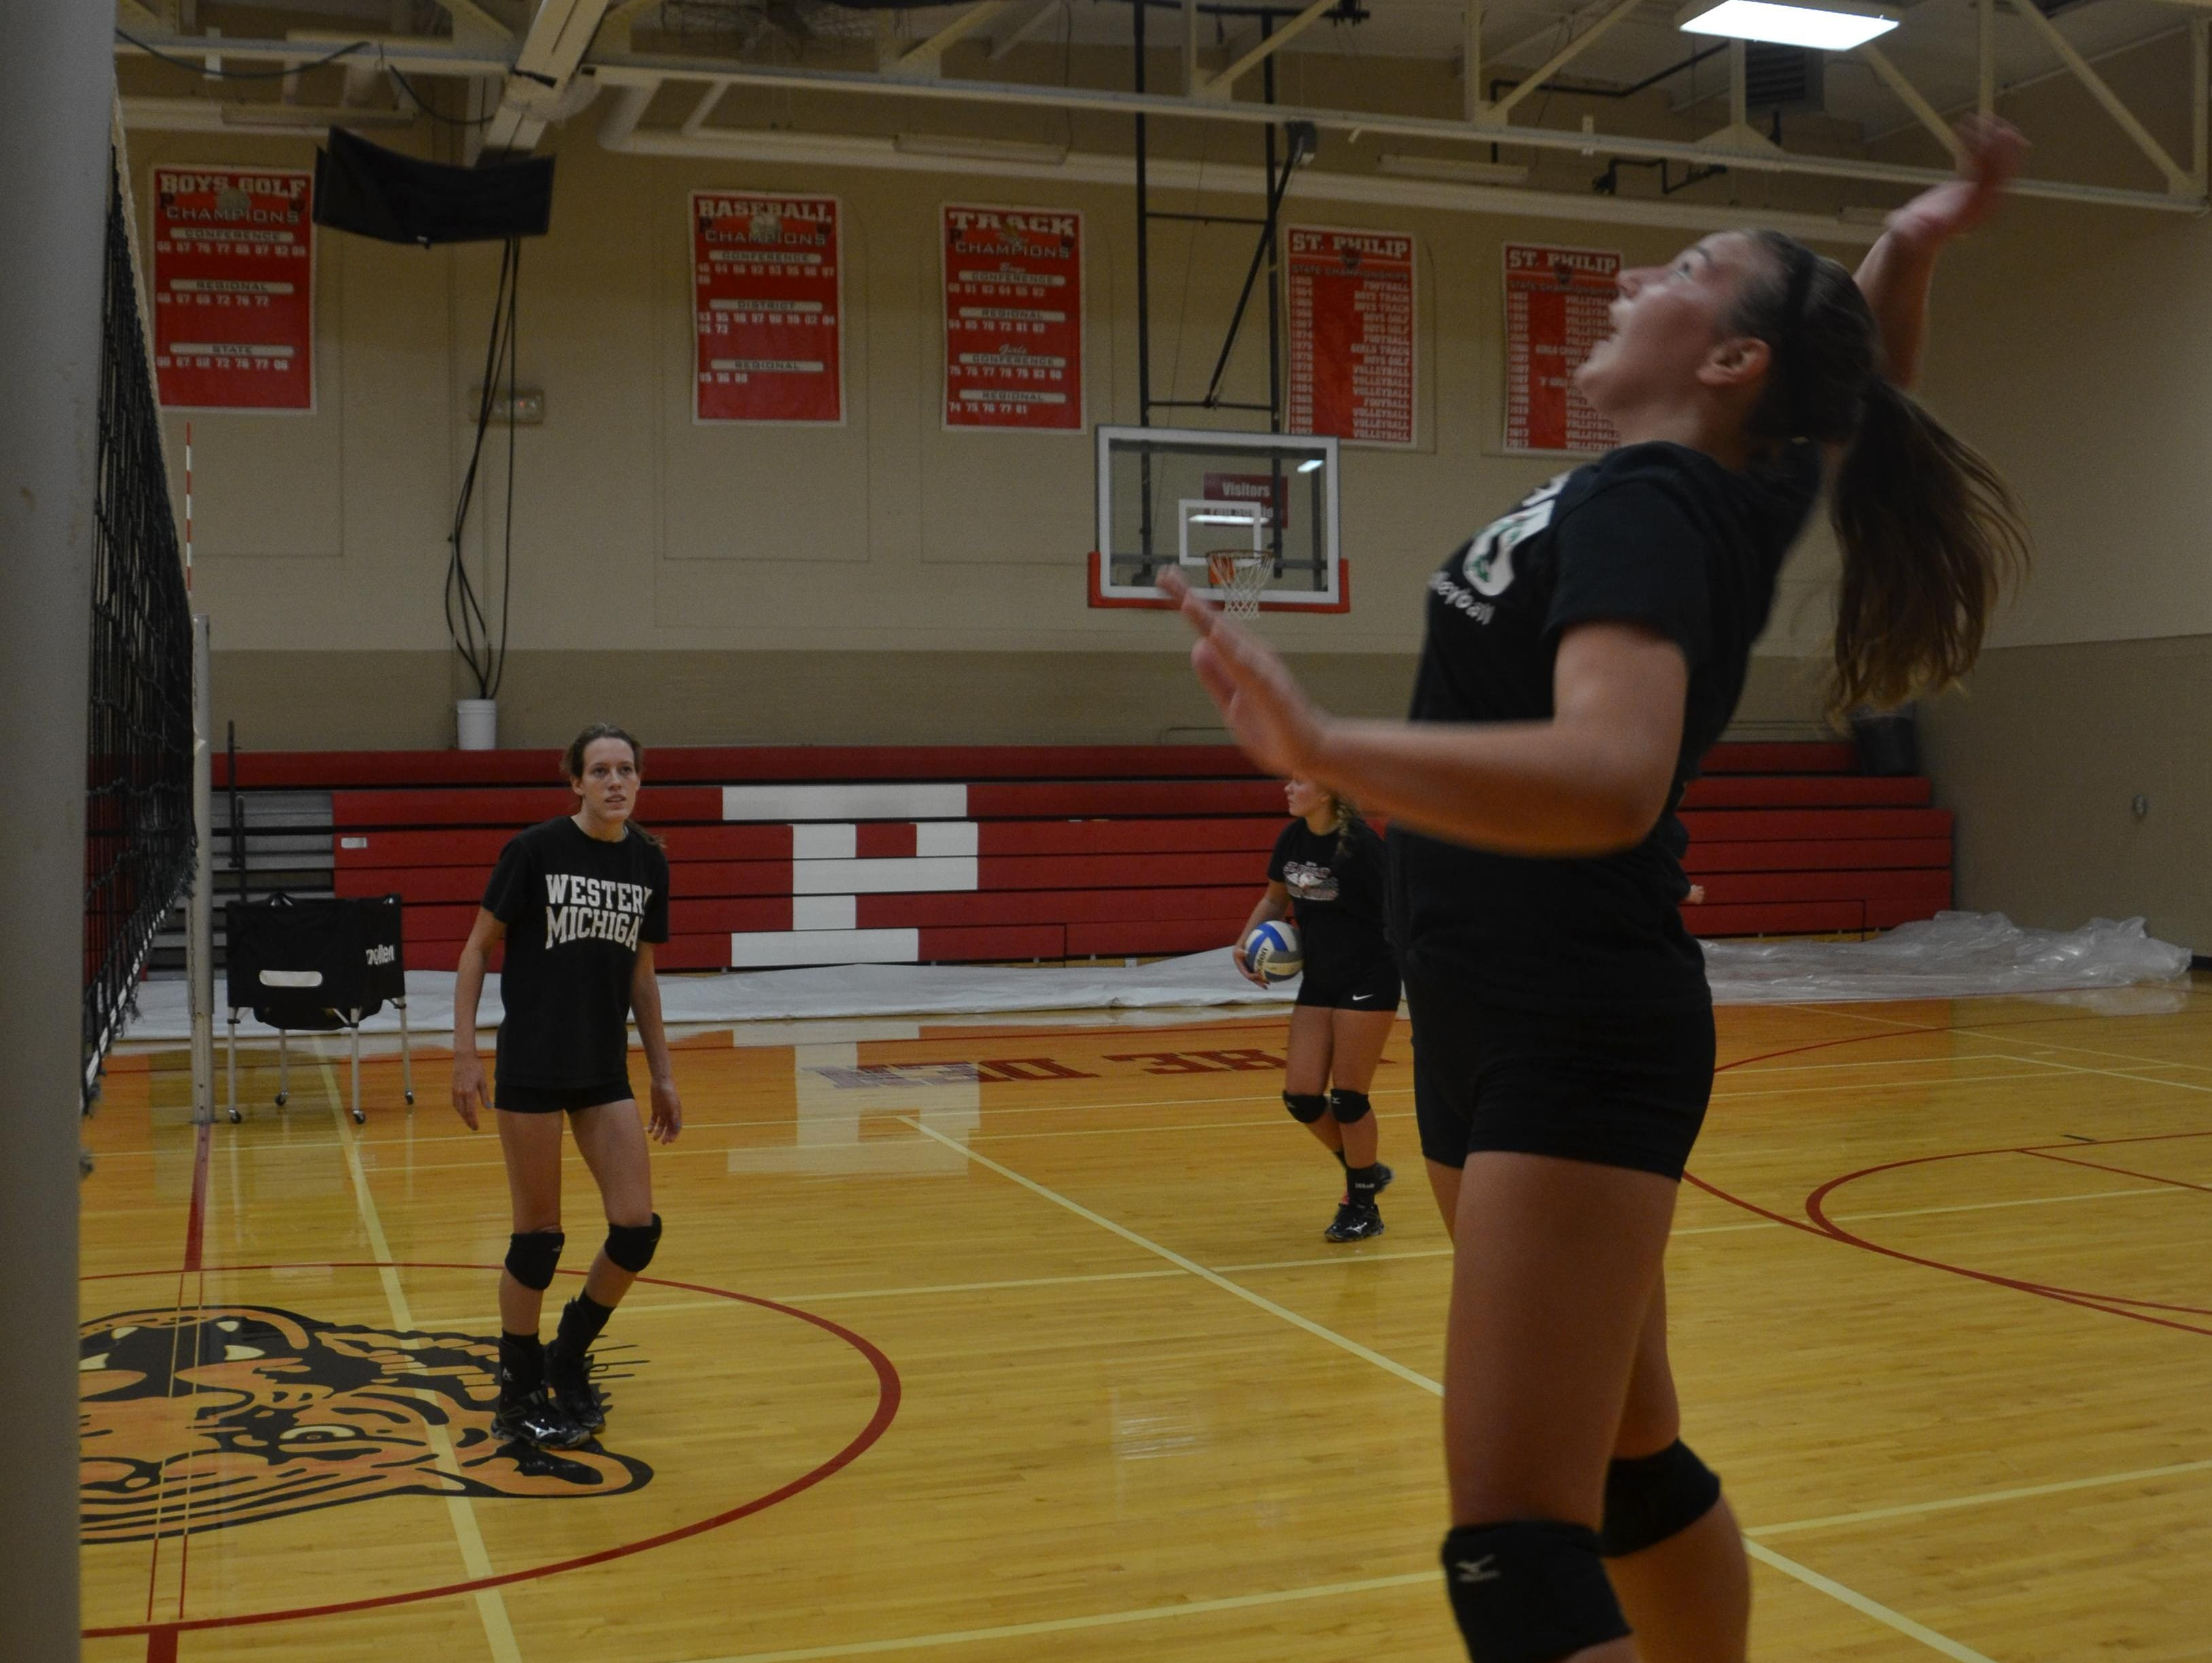 St. Philip's Anna Lehouiller goes for a kill during the first volleyball practice of the season on Wednesday.